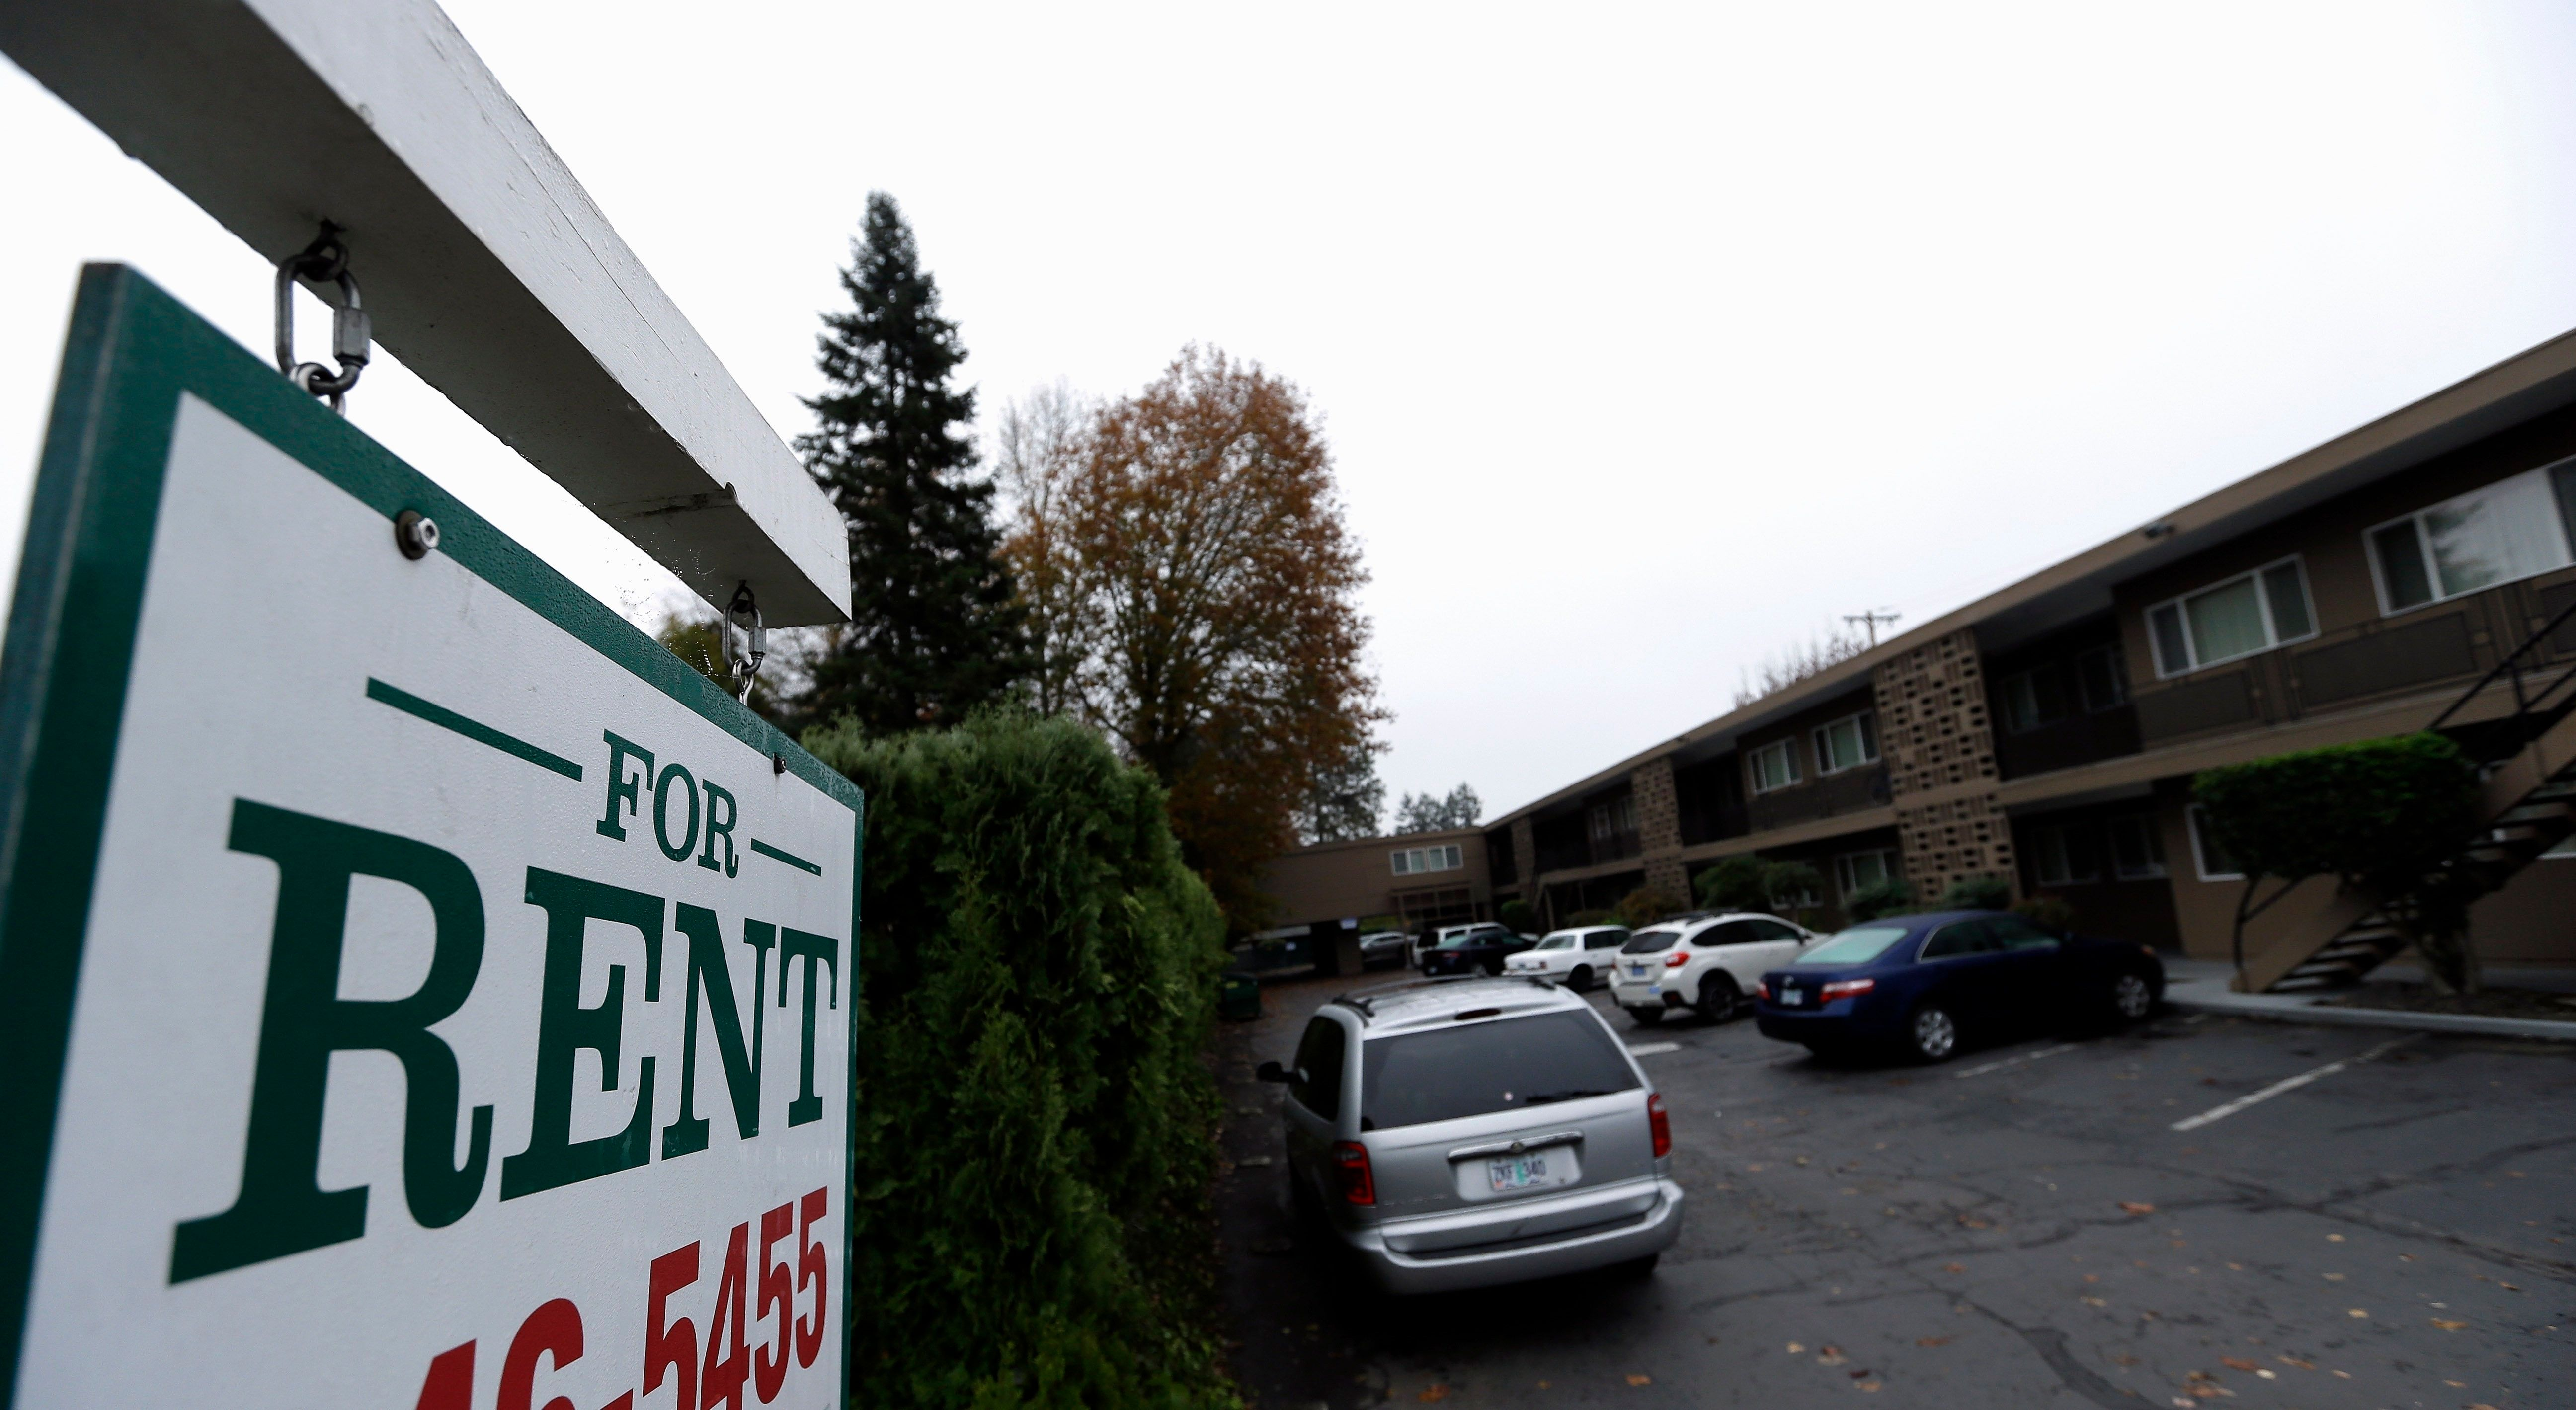 FILE - In this Nov. 10, 2015, file photo, apartments for rent are shown in Portland, Ore. Oregon is set to become the first state in the nation to impose mandatory rent control. The measure sailed through the Democratically-controlled House on Tuesday, Feb. 26, 2019. Landlords would only be allowed to raise rent a limited amount once per year under the bill, which previously passed the Senate. (AP Photo/Don Ryan, File)